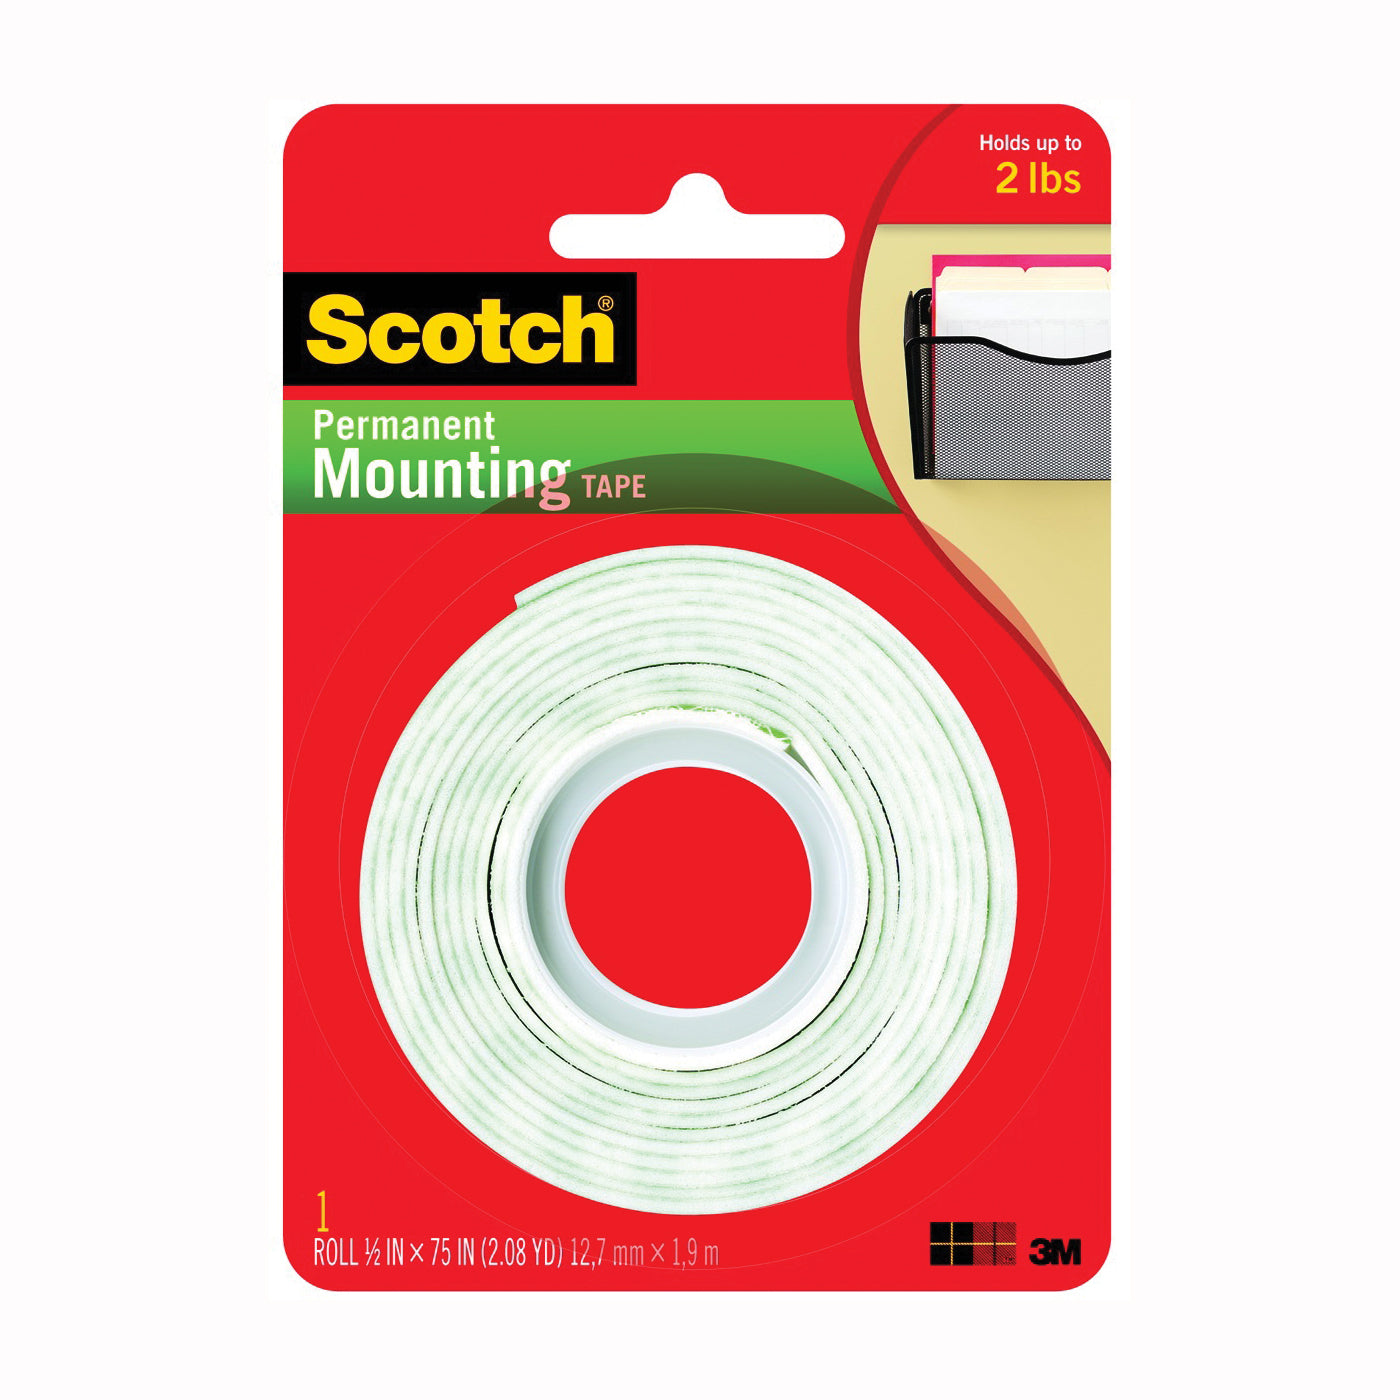 3M Scotch Foam Mounting Tape 1/2